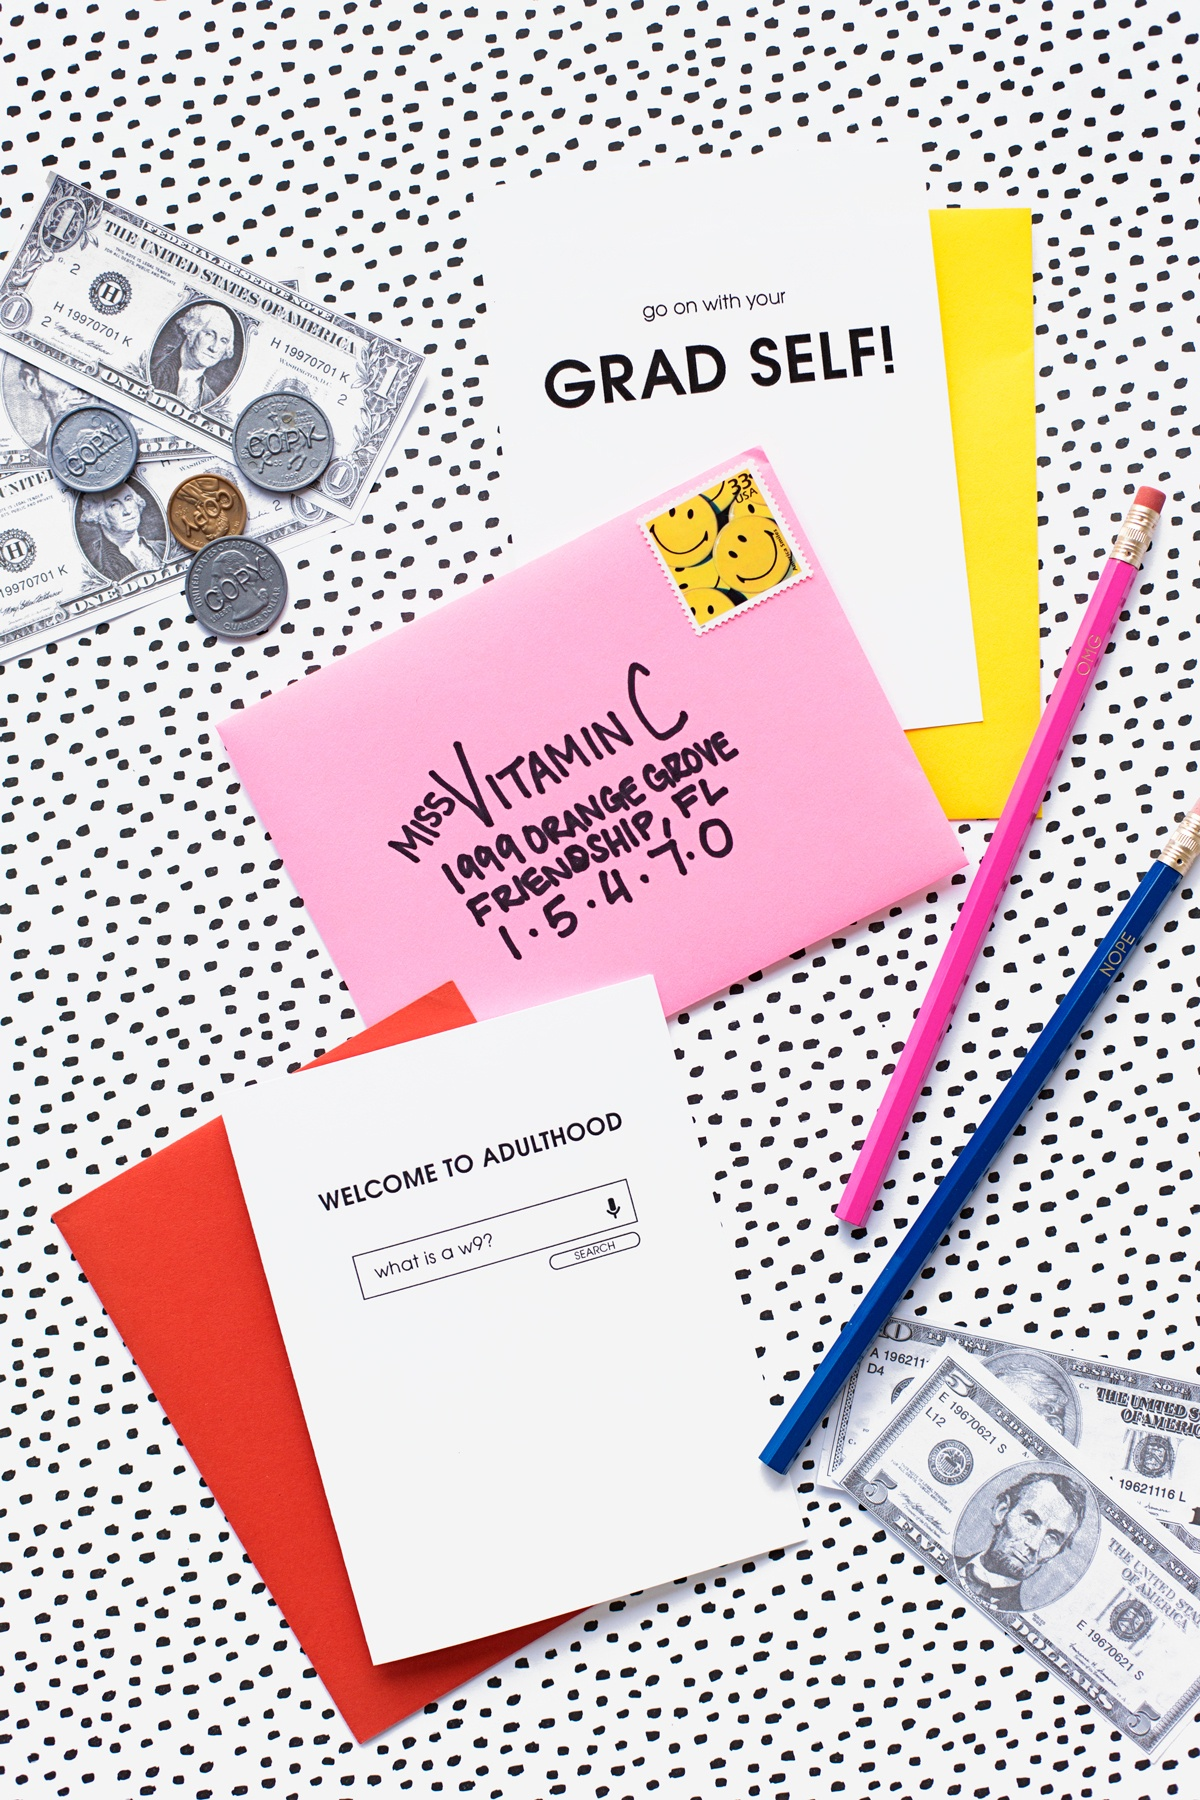 Welcome To Adulthood: Free Printable Graduation Cards - Studio Diy - Free Printable Welcome Cards